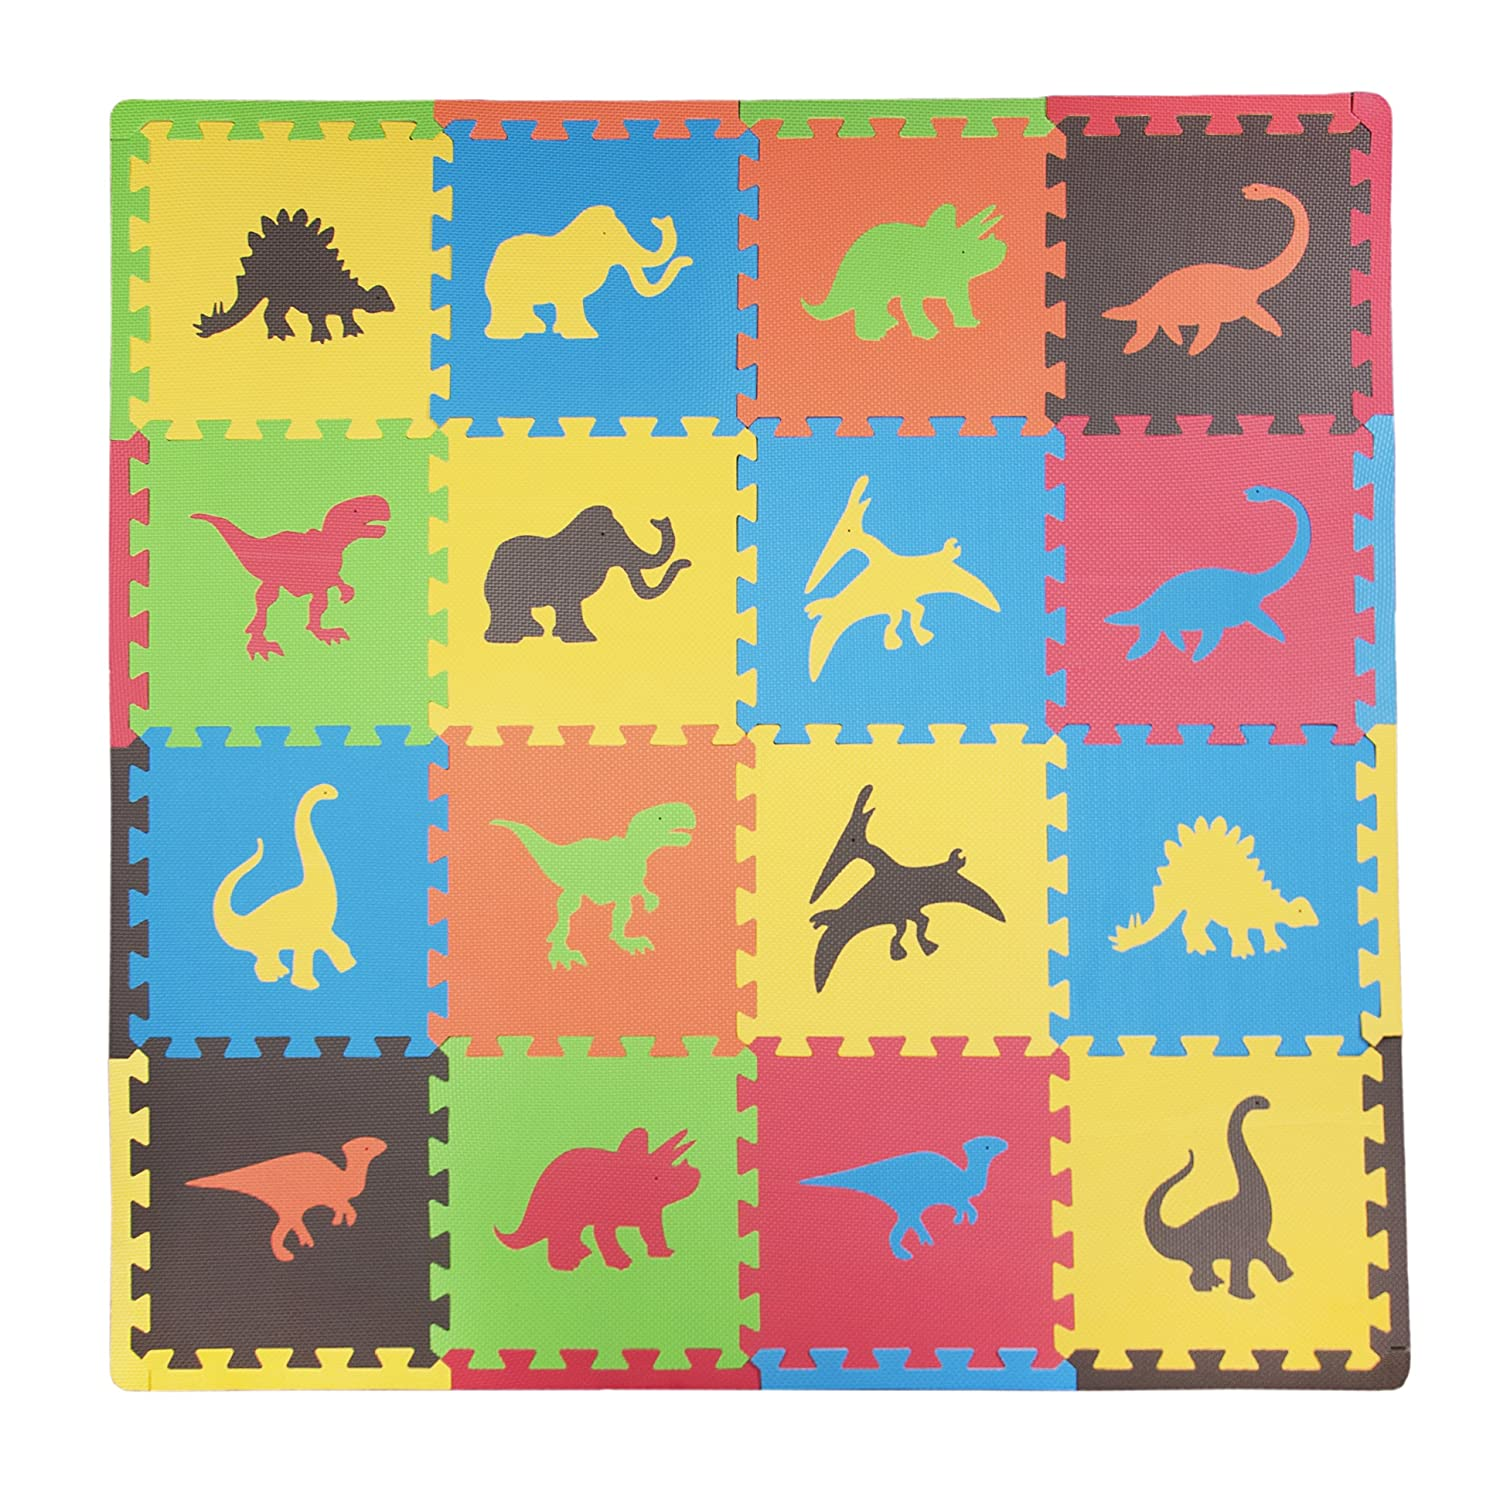 Tadpoles Soft EVA Foam 16pc Playmat Set, Unicorns and Rainbows, Pink, 50x50 50x50 Sleeping Partners Int' l CPMSEV926